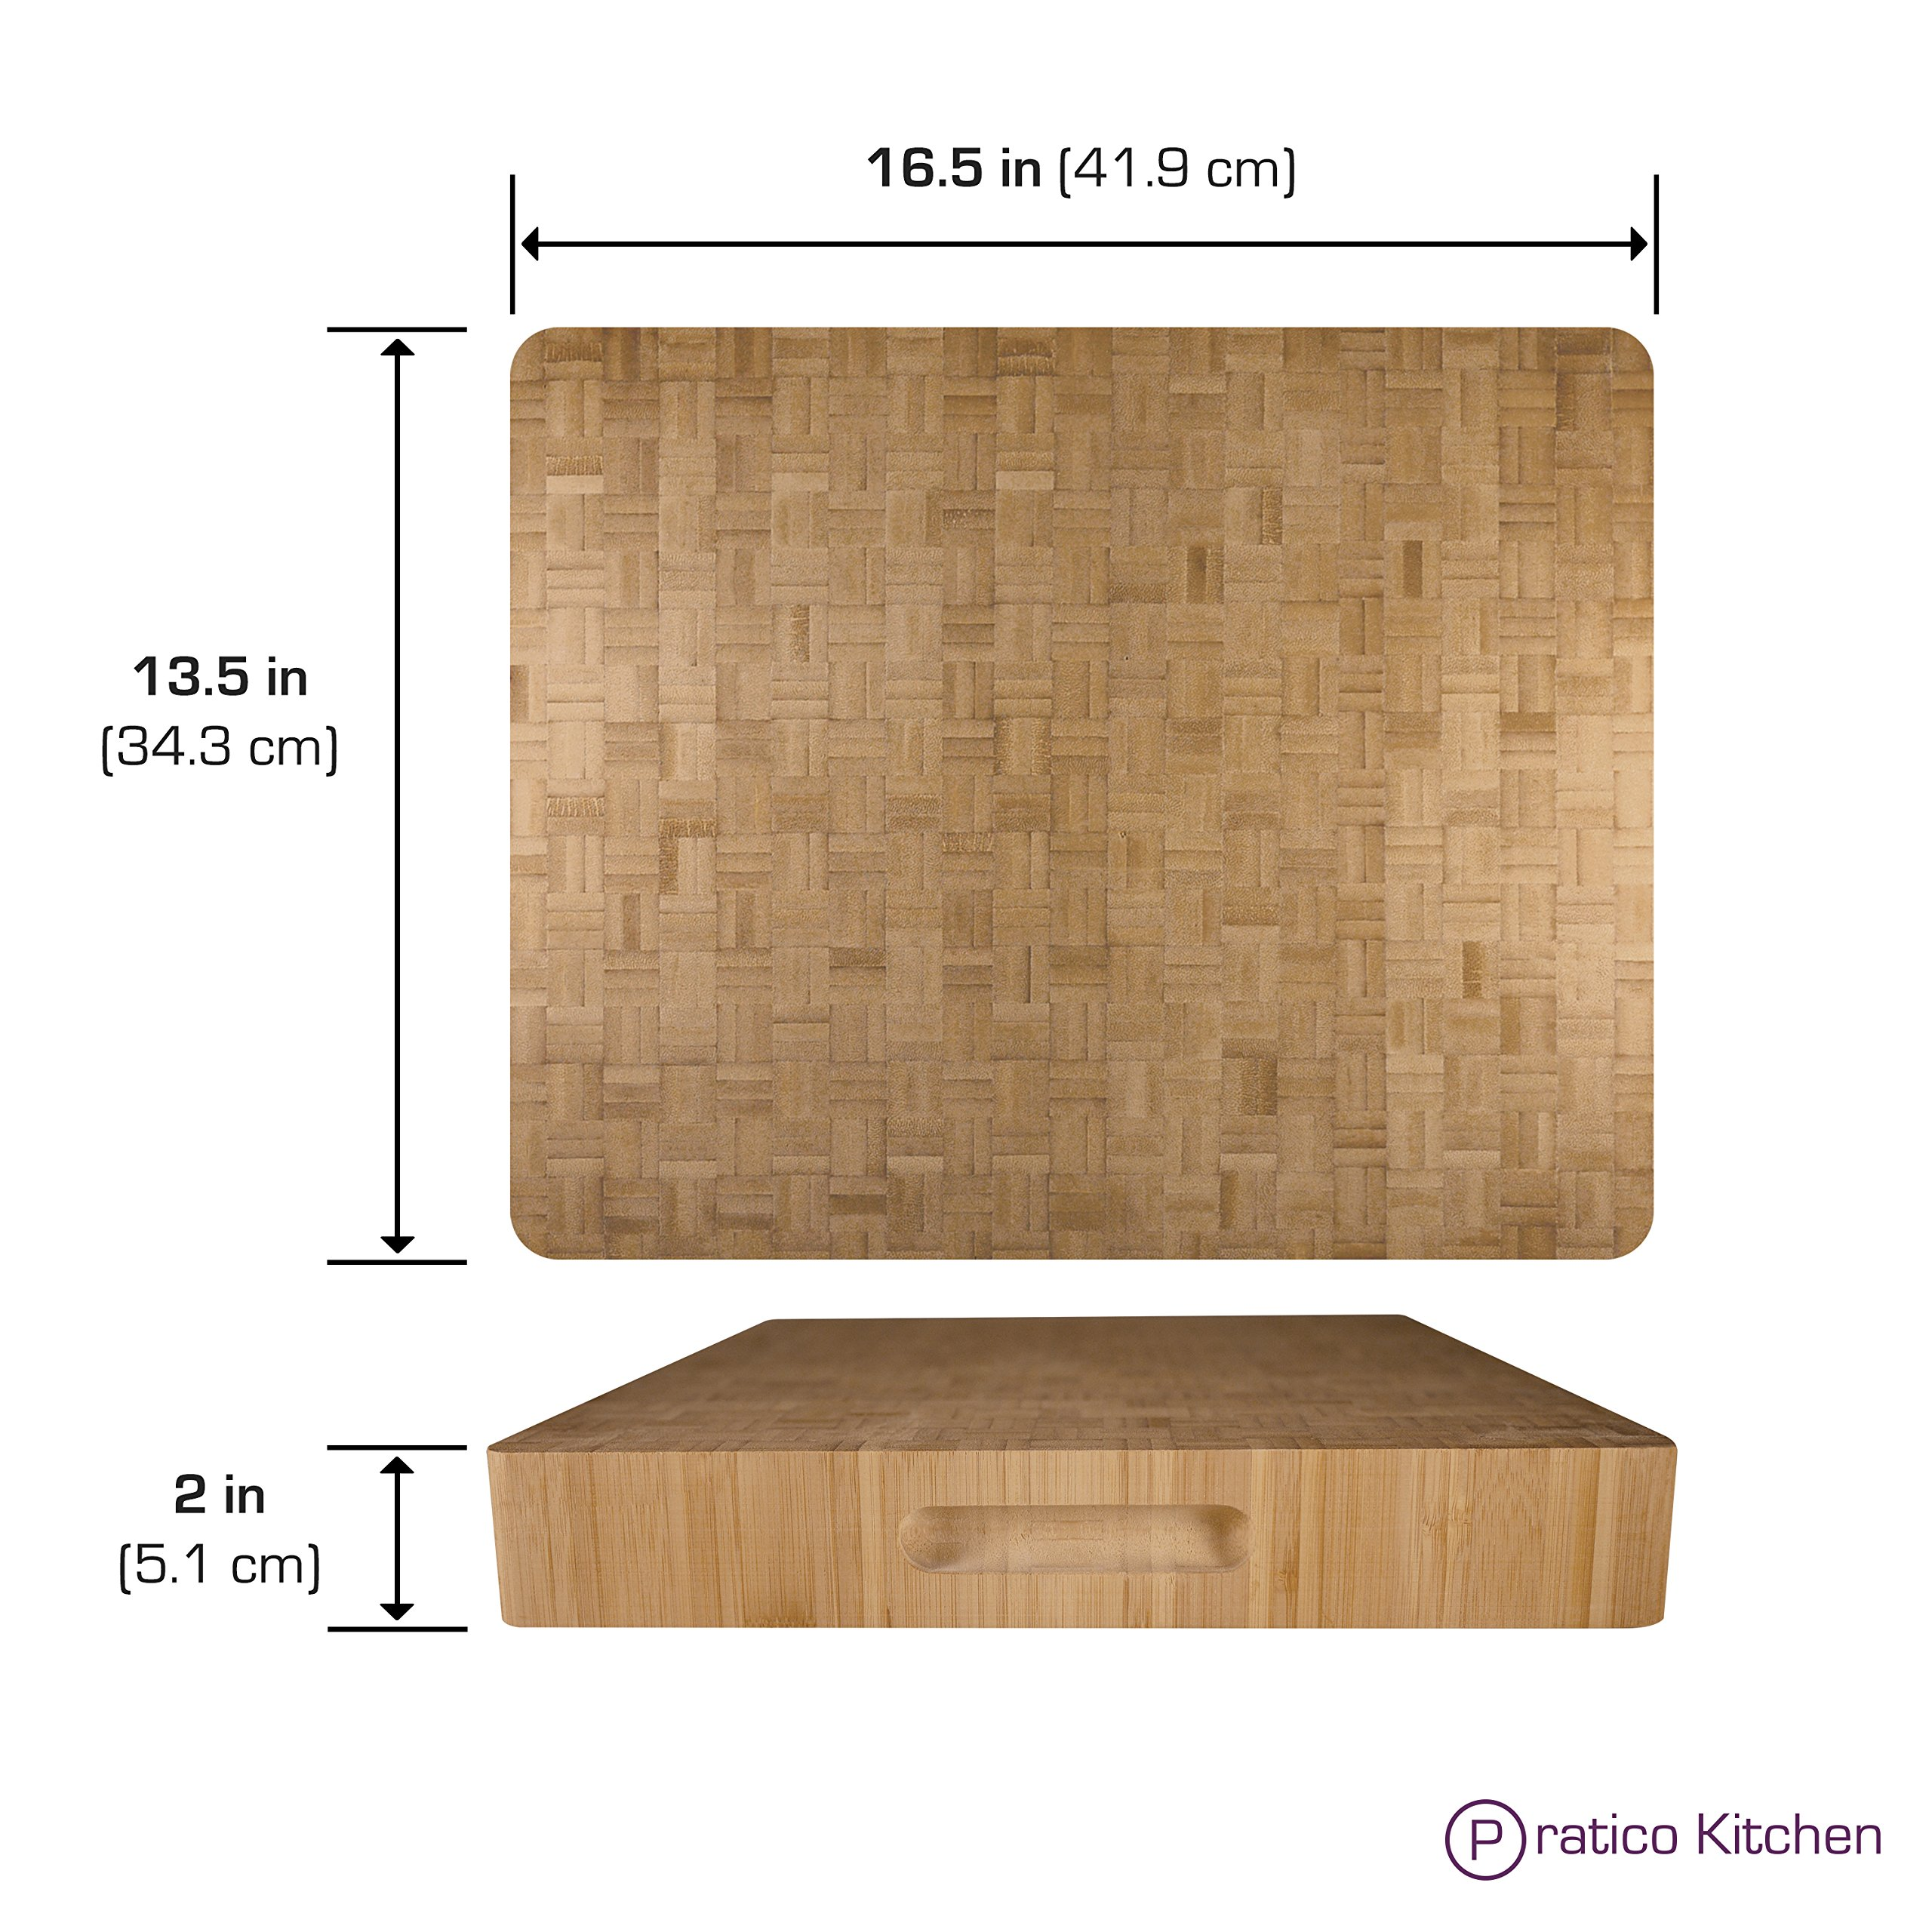 Pratico Kitchen Reversible Organic End Grain Butcher Chopping Block & Serving Tray - 16.5 x 13.5 x 2 inches by Pratico Kitchen (Image #2)